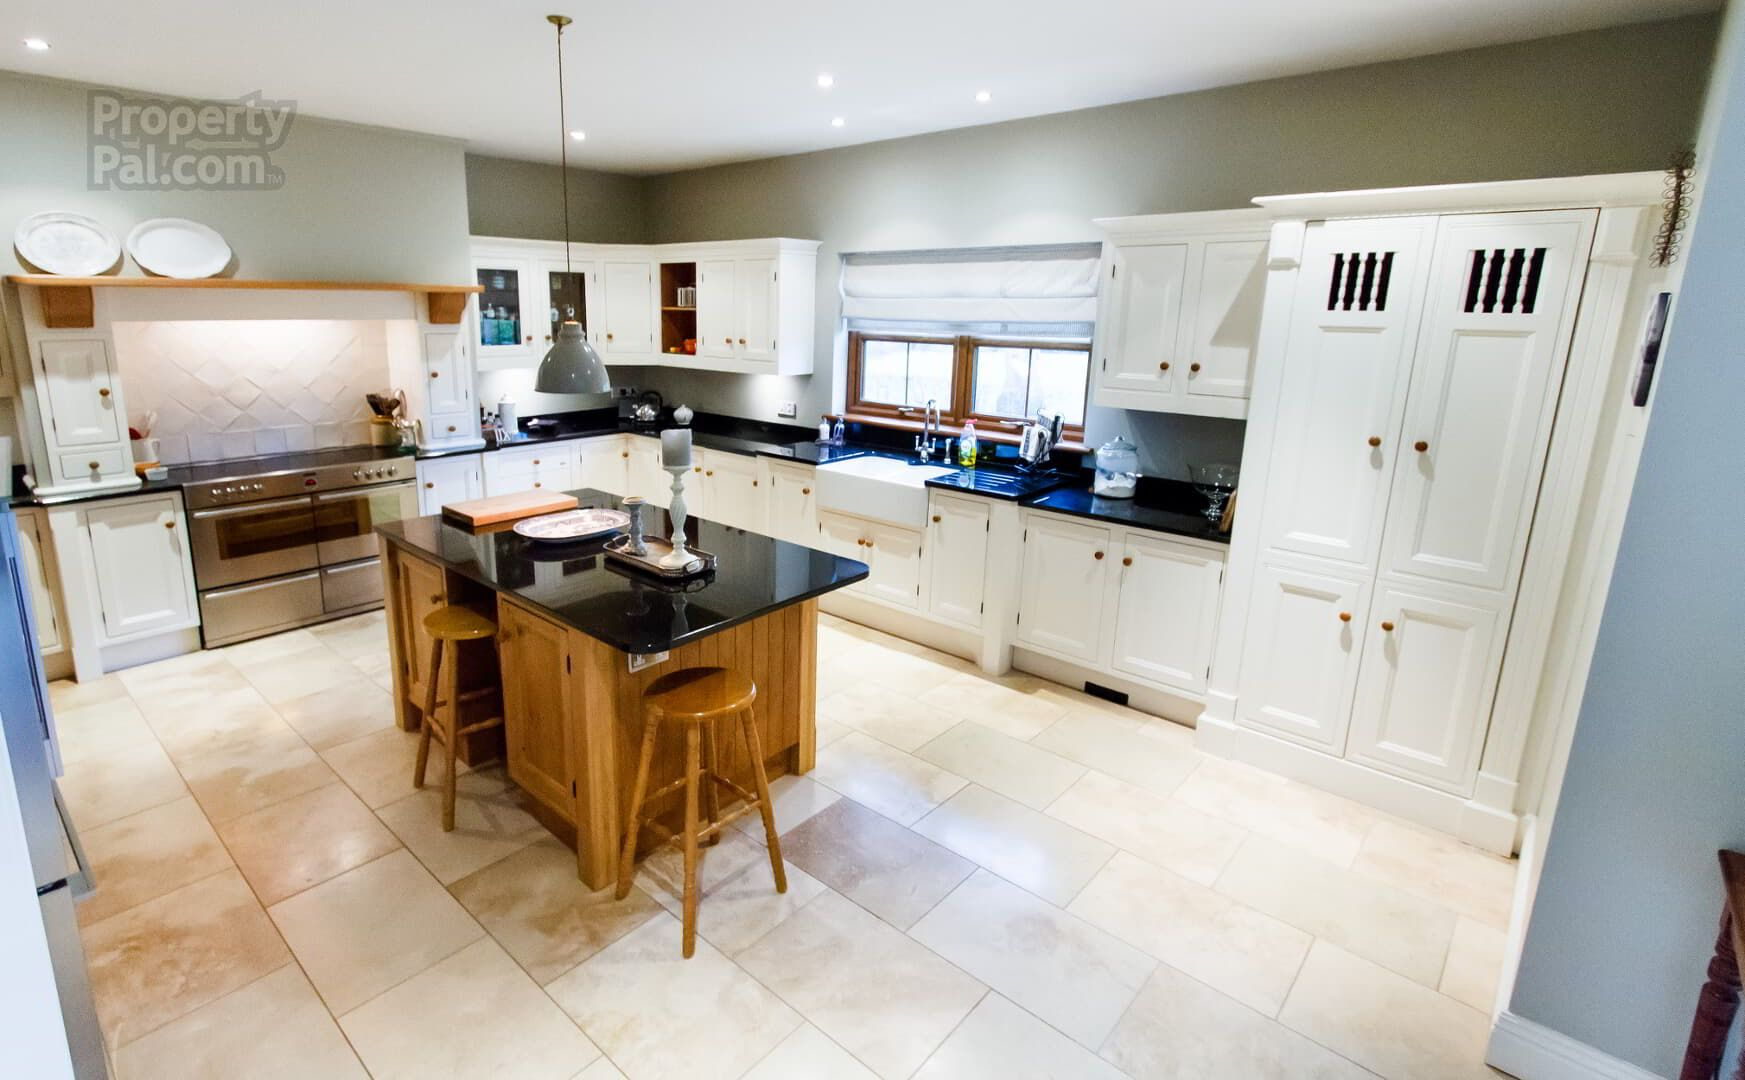 2 Beauwood, Derryhale, Portadown #whitekitchen #kitchenisland ...